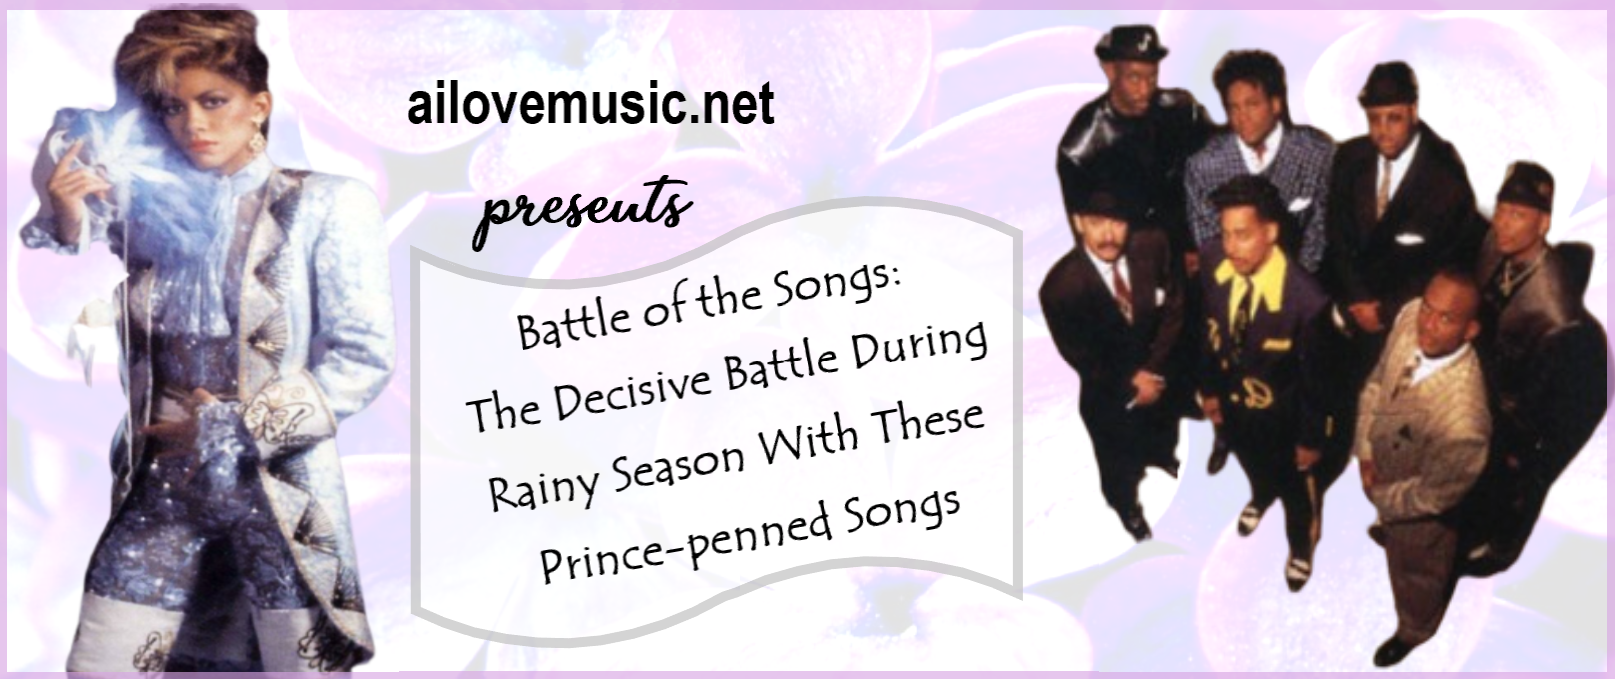 Read more about the article Battle of the Songs: The Decisive Battle During Rainy Season With These Prince-penned Songs